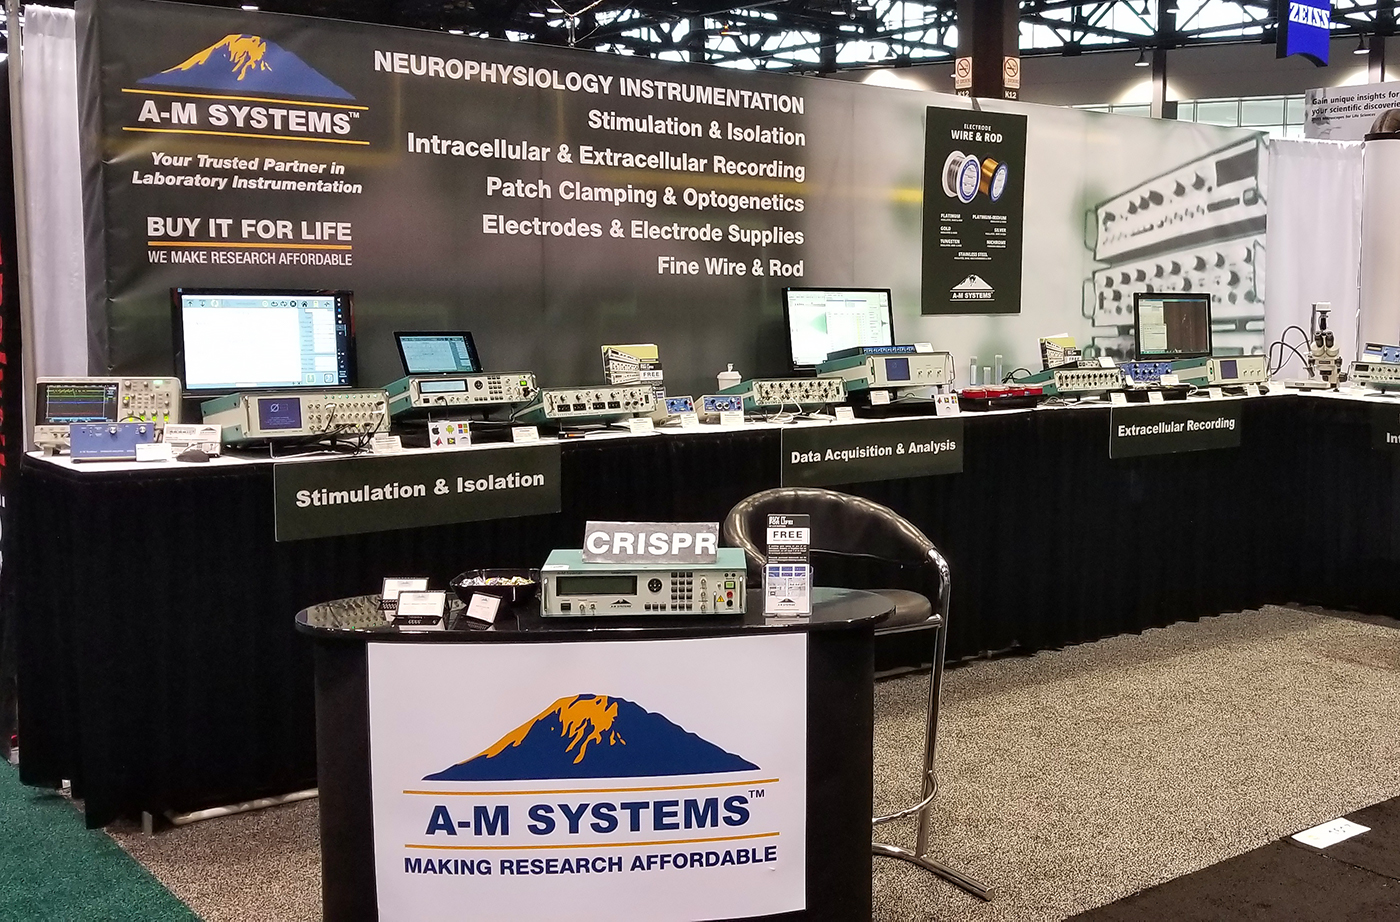 A-M Systems Booth #1617 at Neuroscience 2019 in Chicago